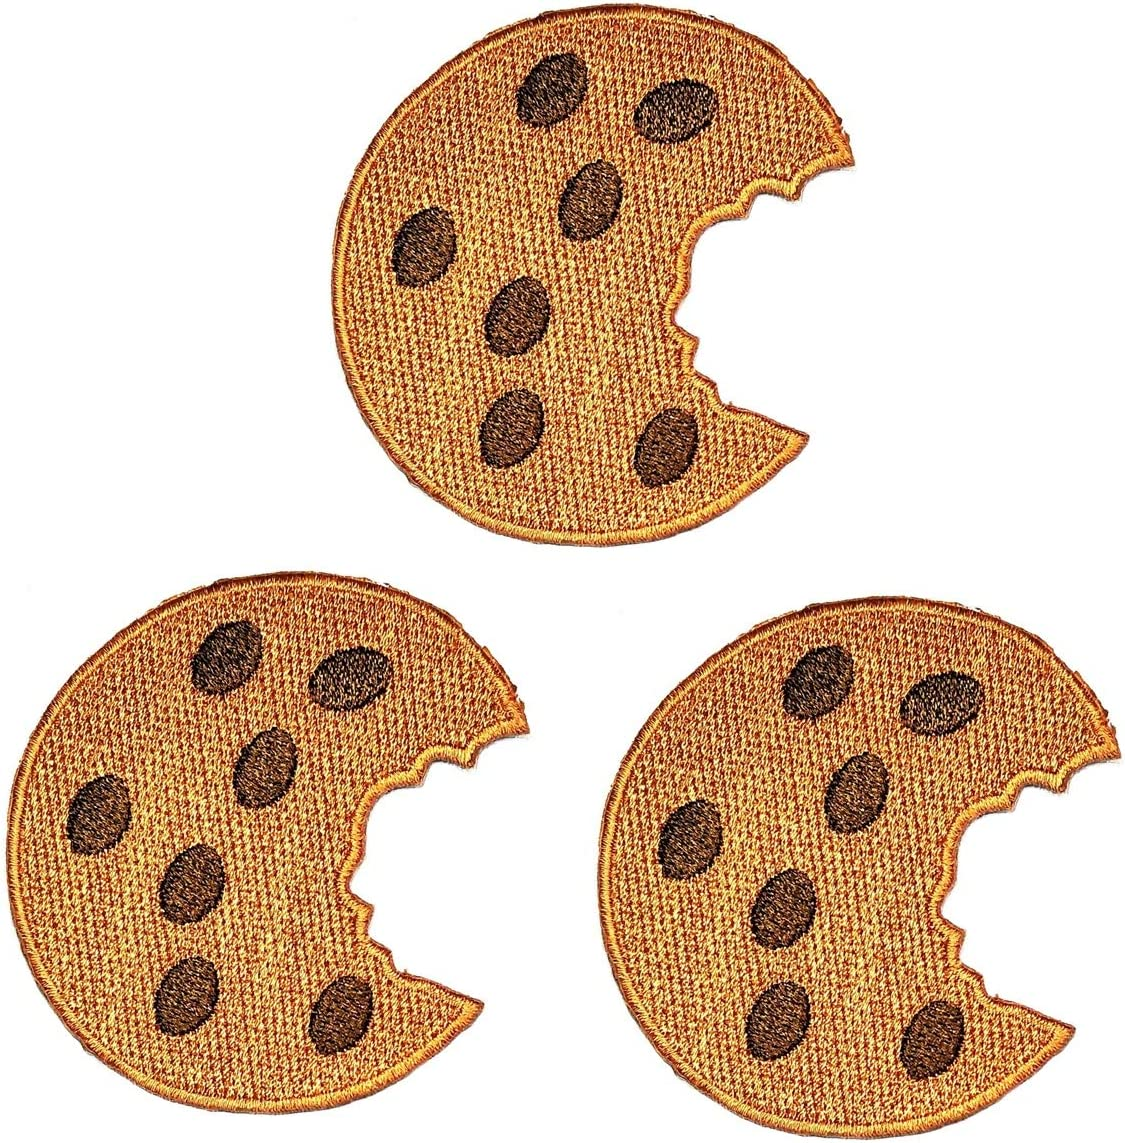 Umama Patch Set of 3 Cute Cookie Embroidered Patch Chocolate Chip Cookie Delicious Dessert Food Cartoon Kids Sew Iron On Patches Clothes Dress Plant Hat Jeans Sewing Applique DIY Accessory